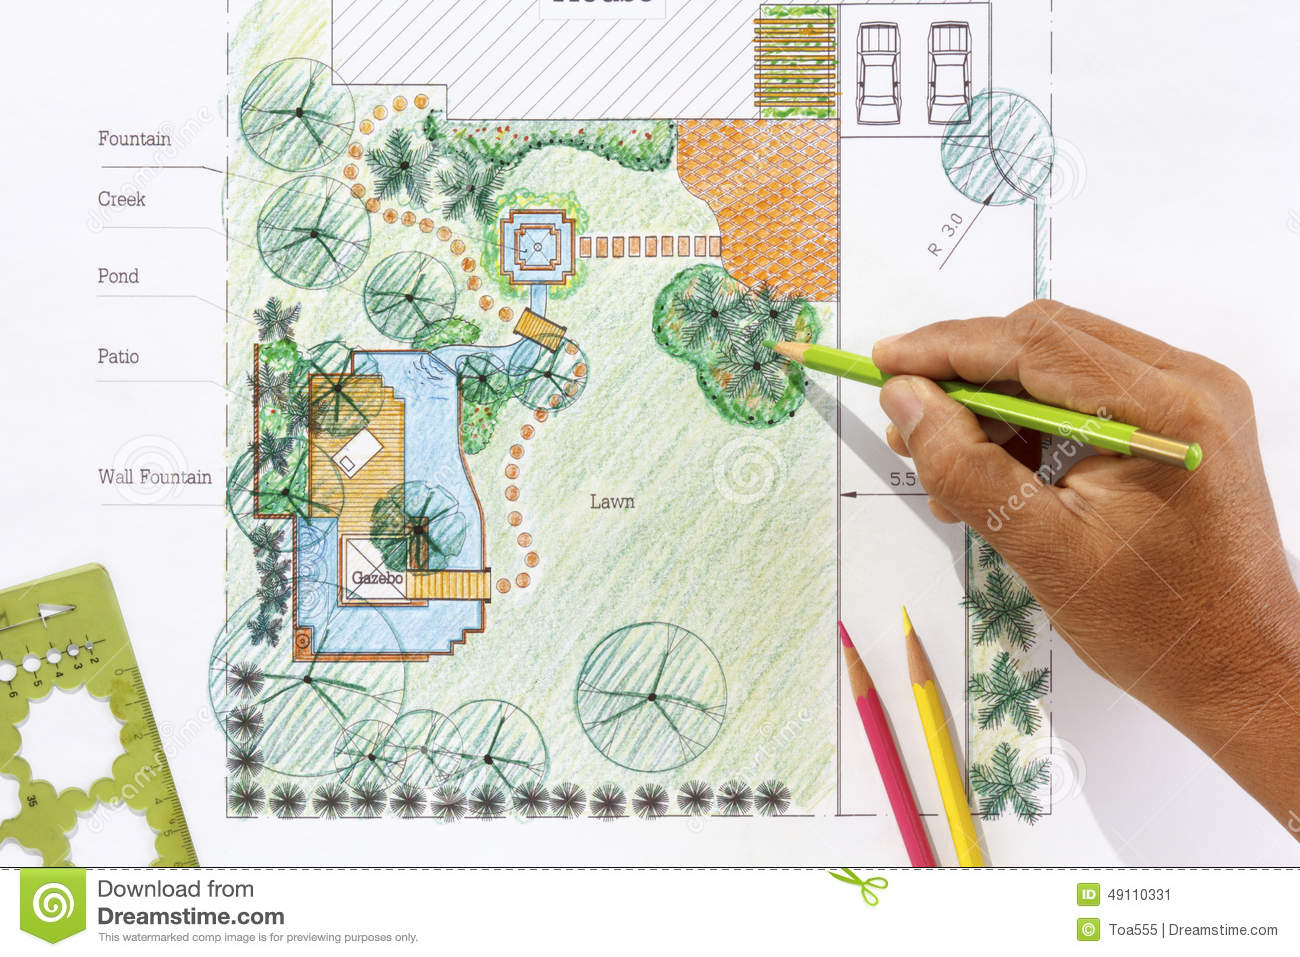 Landscape architect design water garden plans stock photo for Outdoor landscape plans